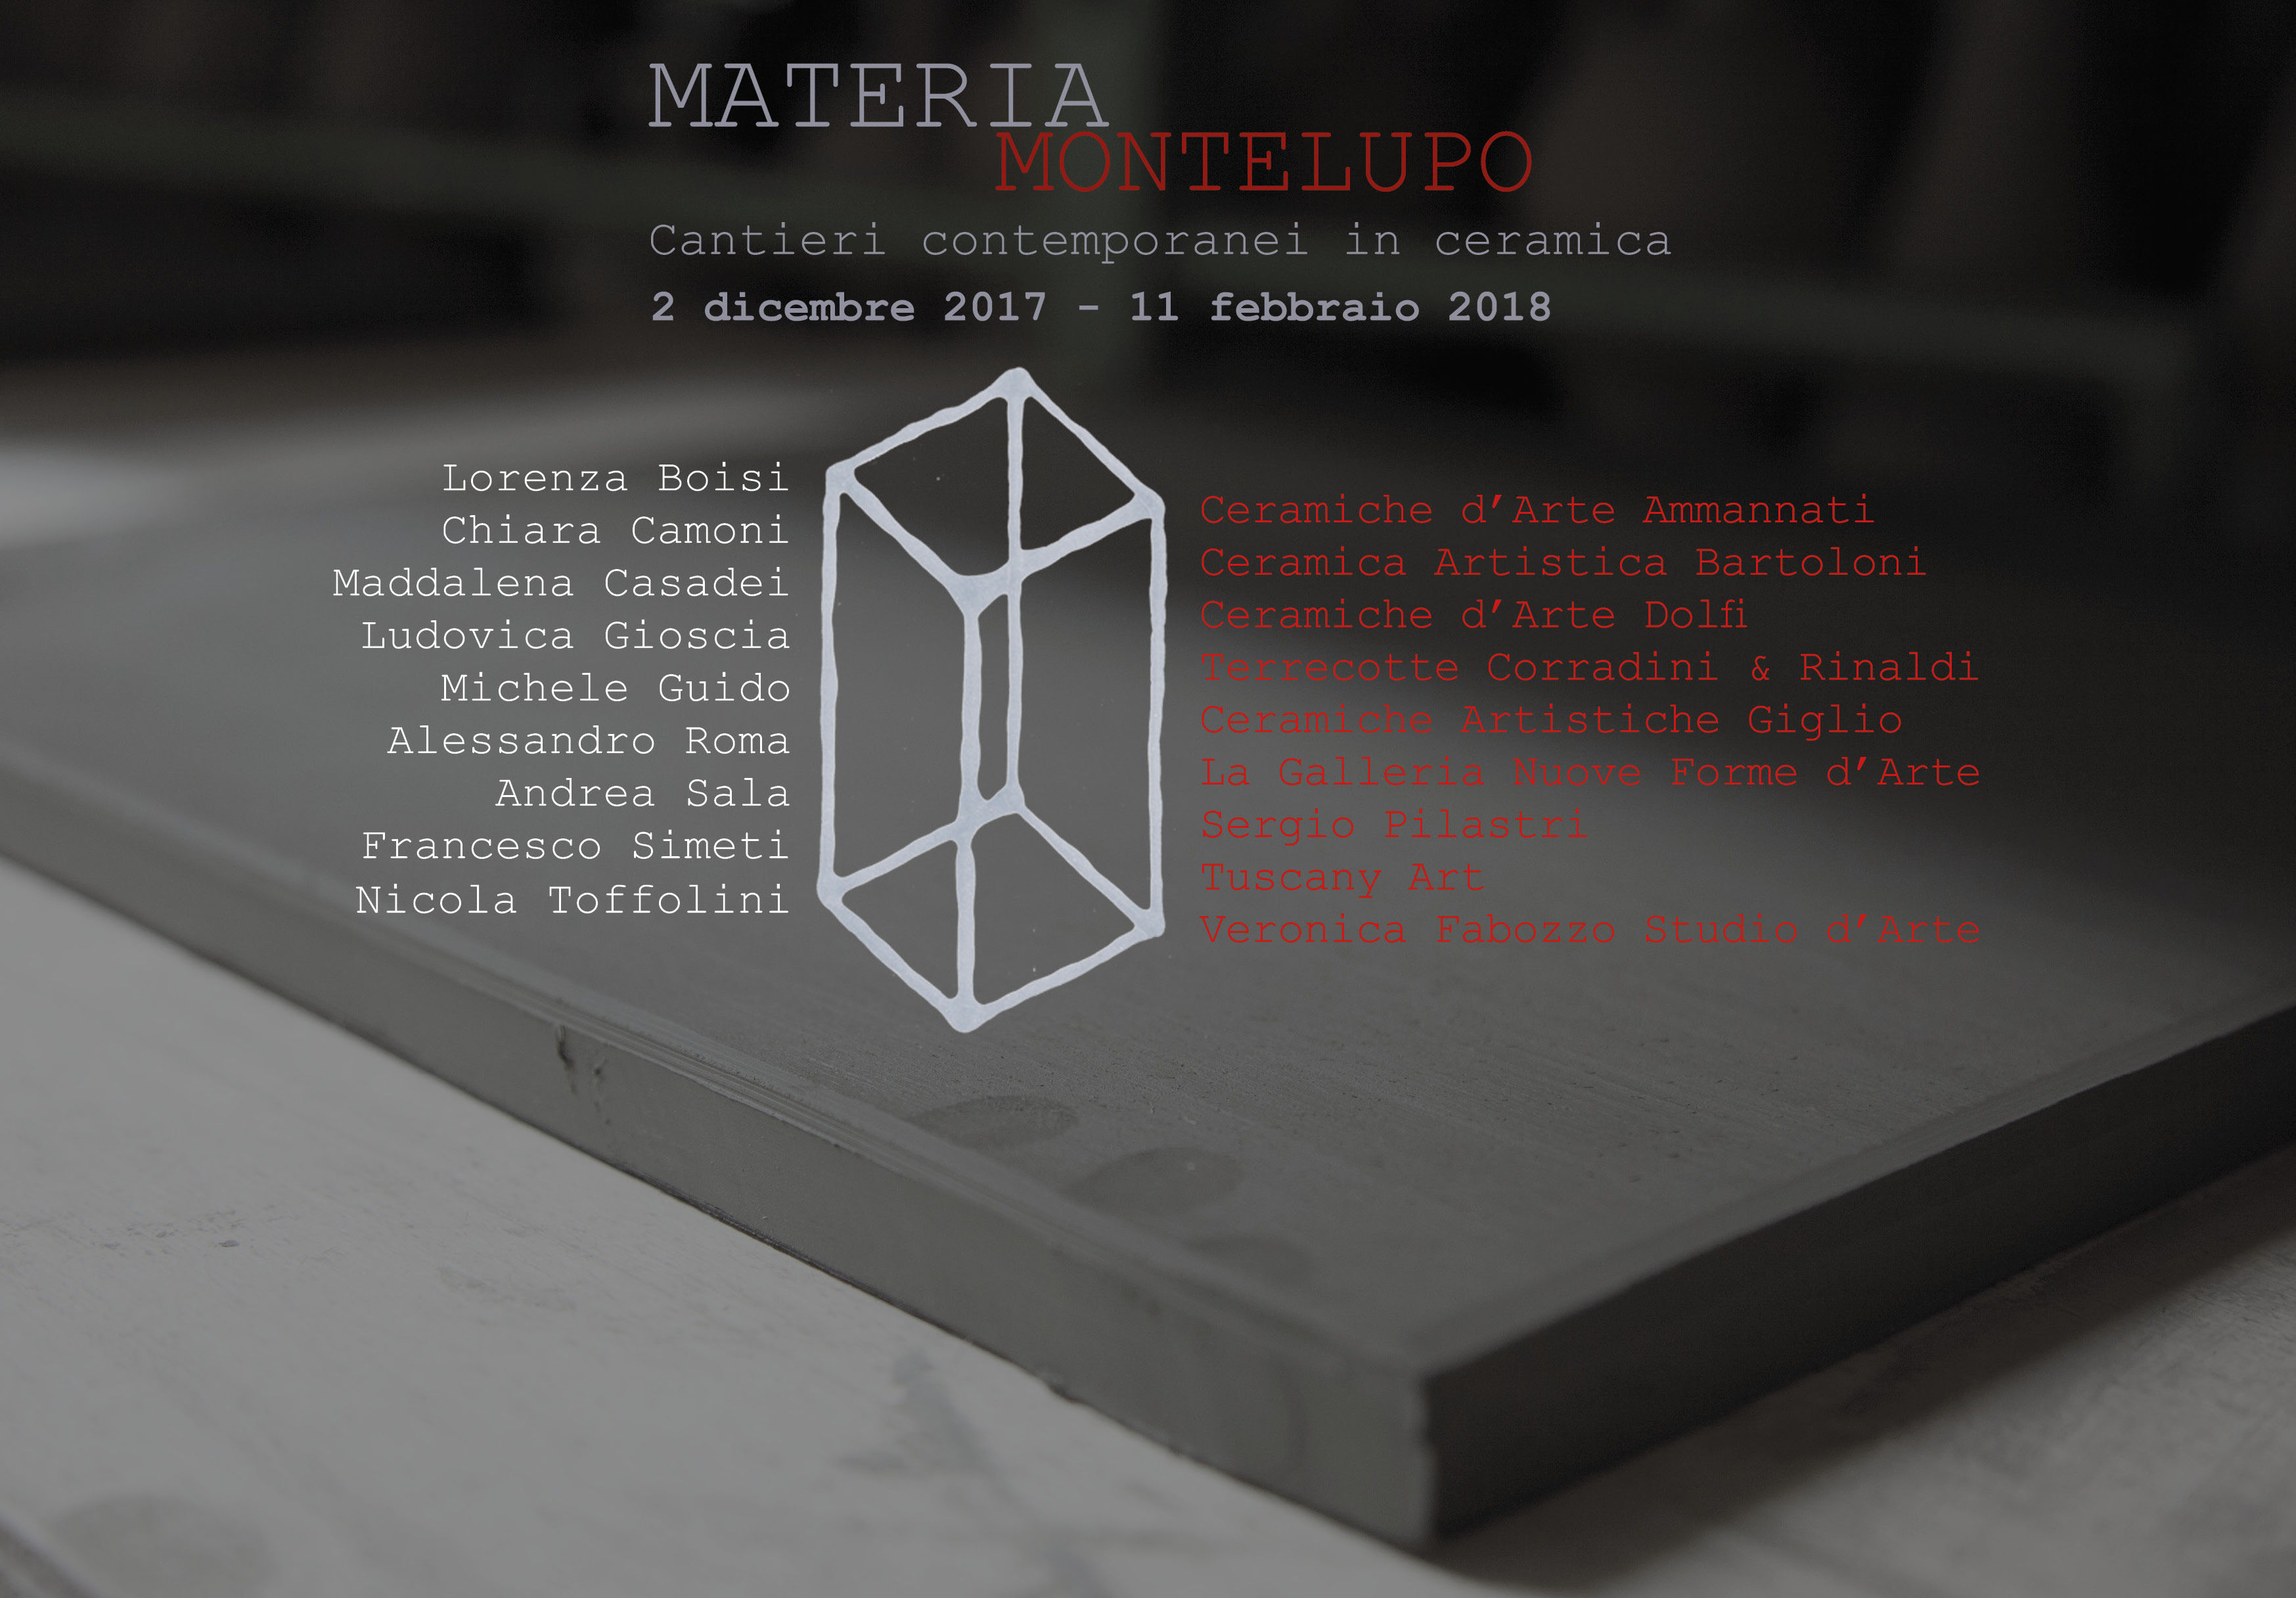 Materia Montelupo 2017, the exhibition of contemporary ceramic